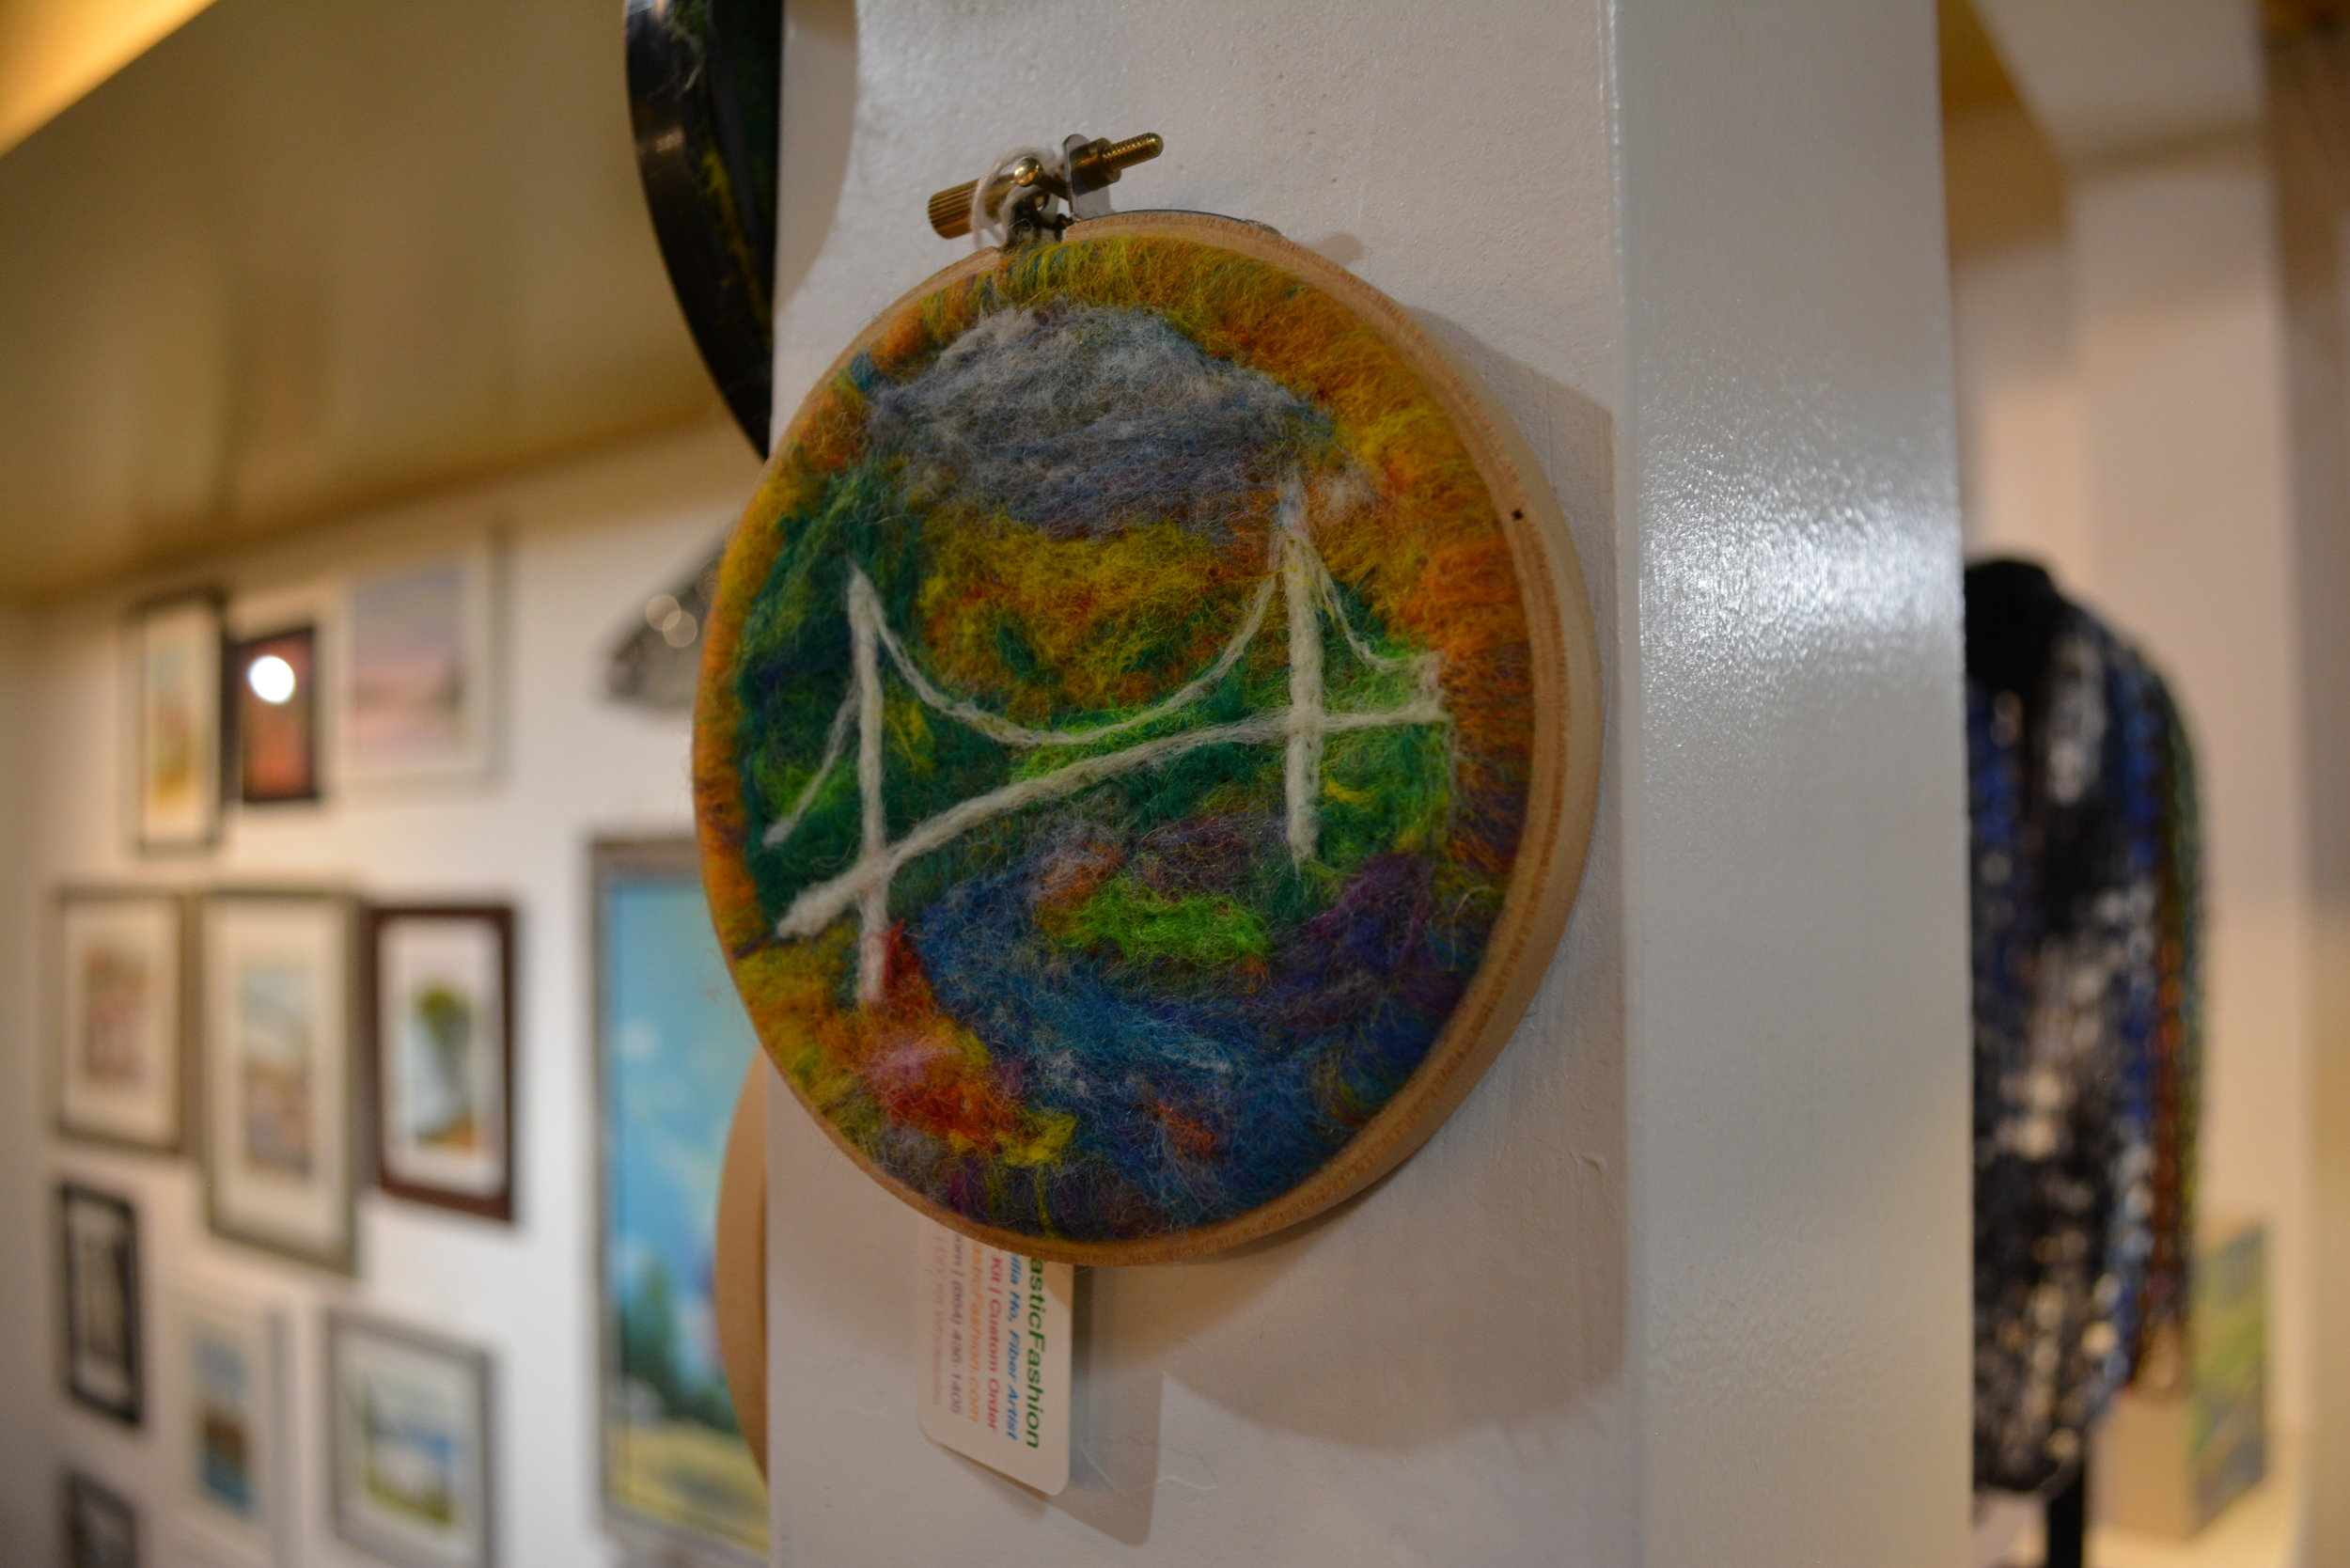 Cecilia Ho - Fiber artist using felt. Framed in circle and in framed boxes. work the captures scenes around Greenville, animals, mountains, and oceans, and flowers.